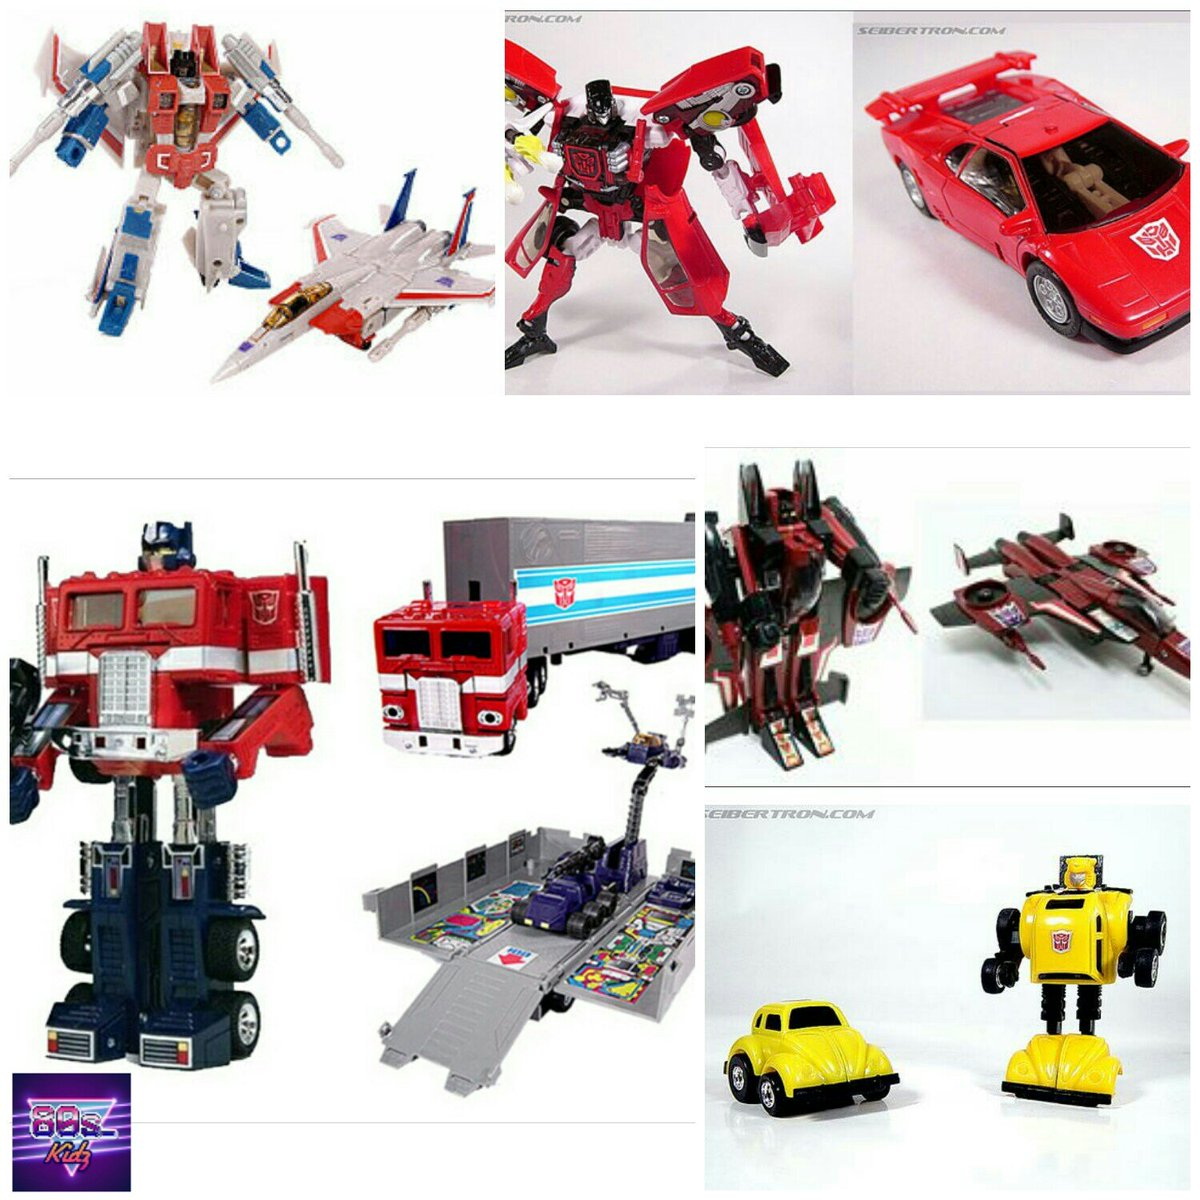 80s kidz on twitter how many of these original transformers did